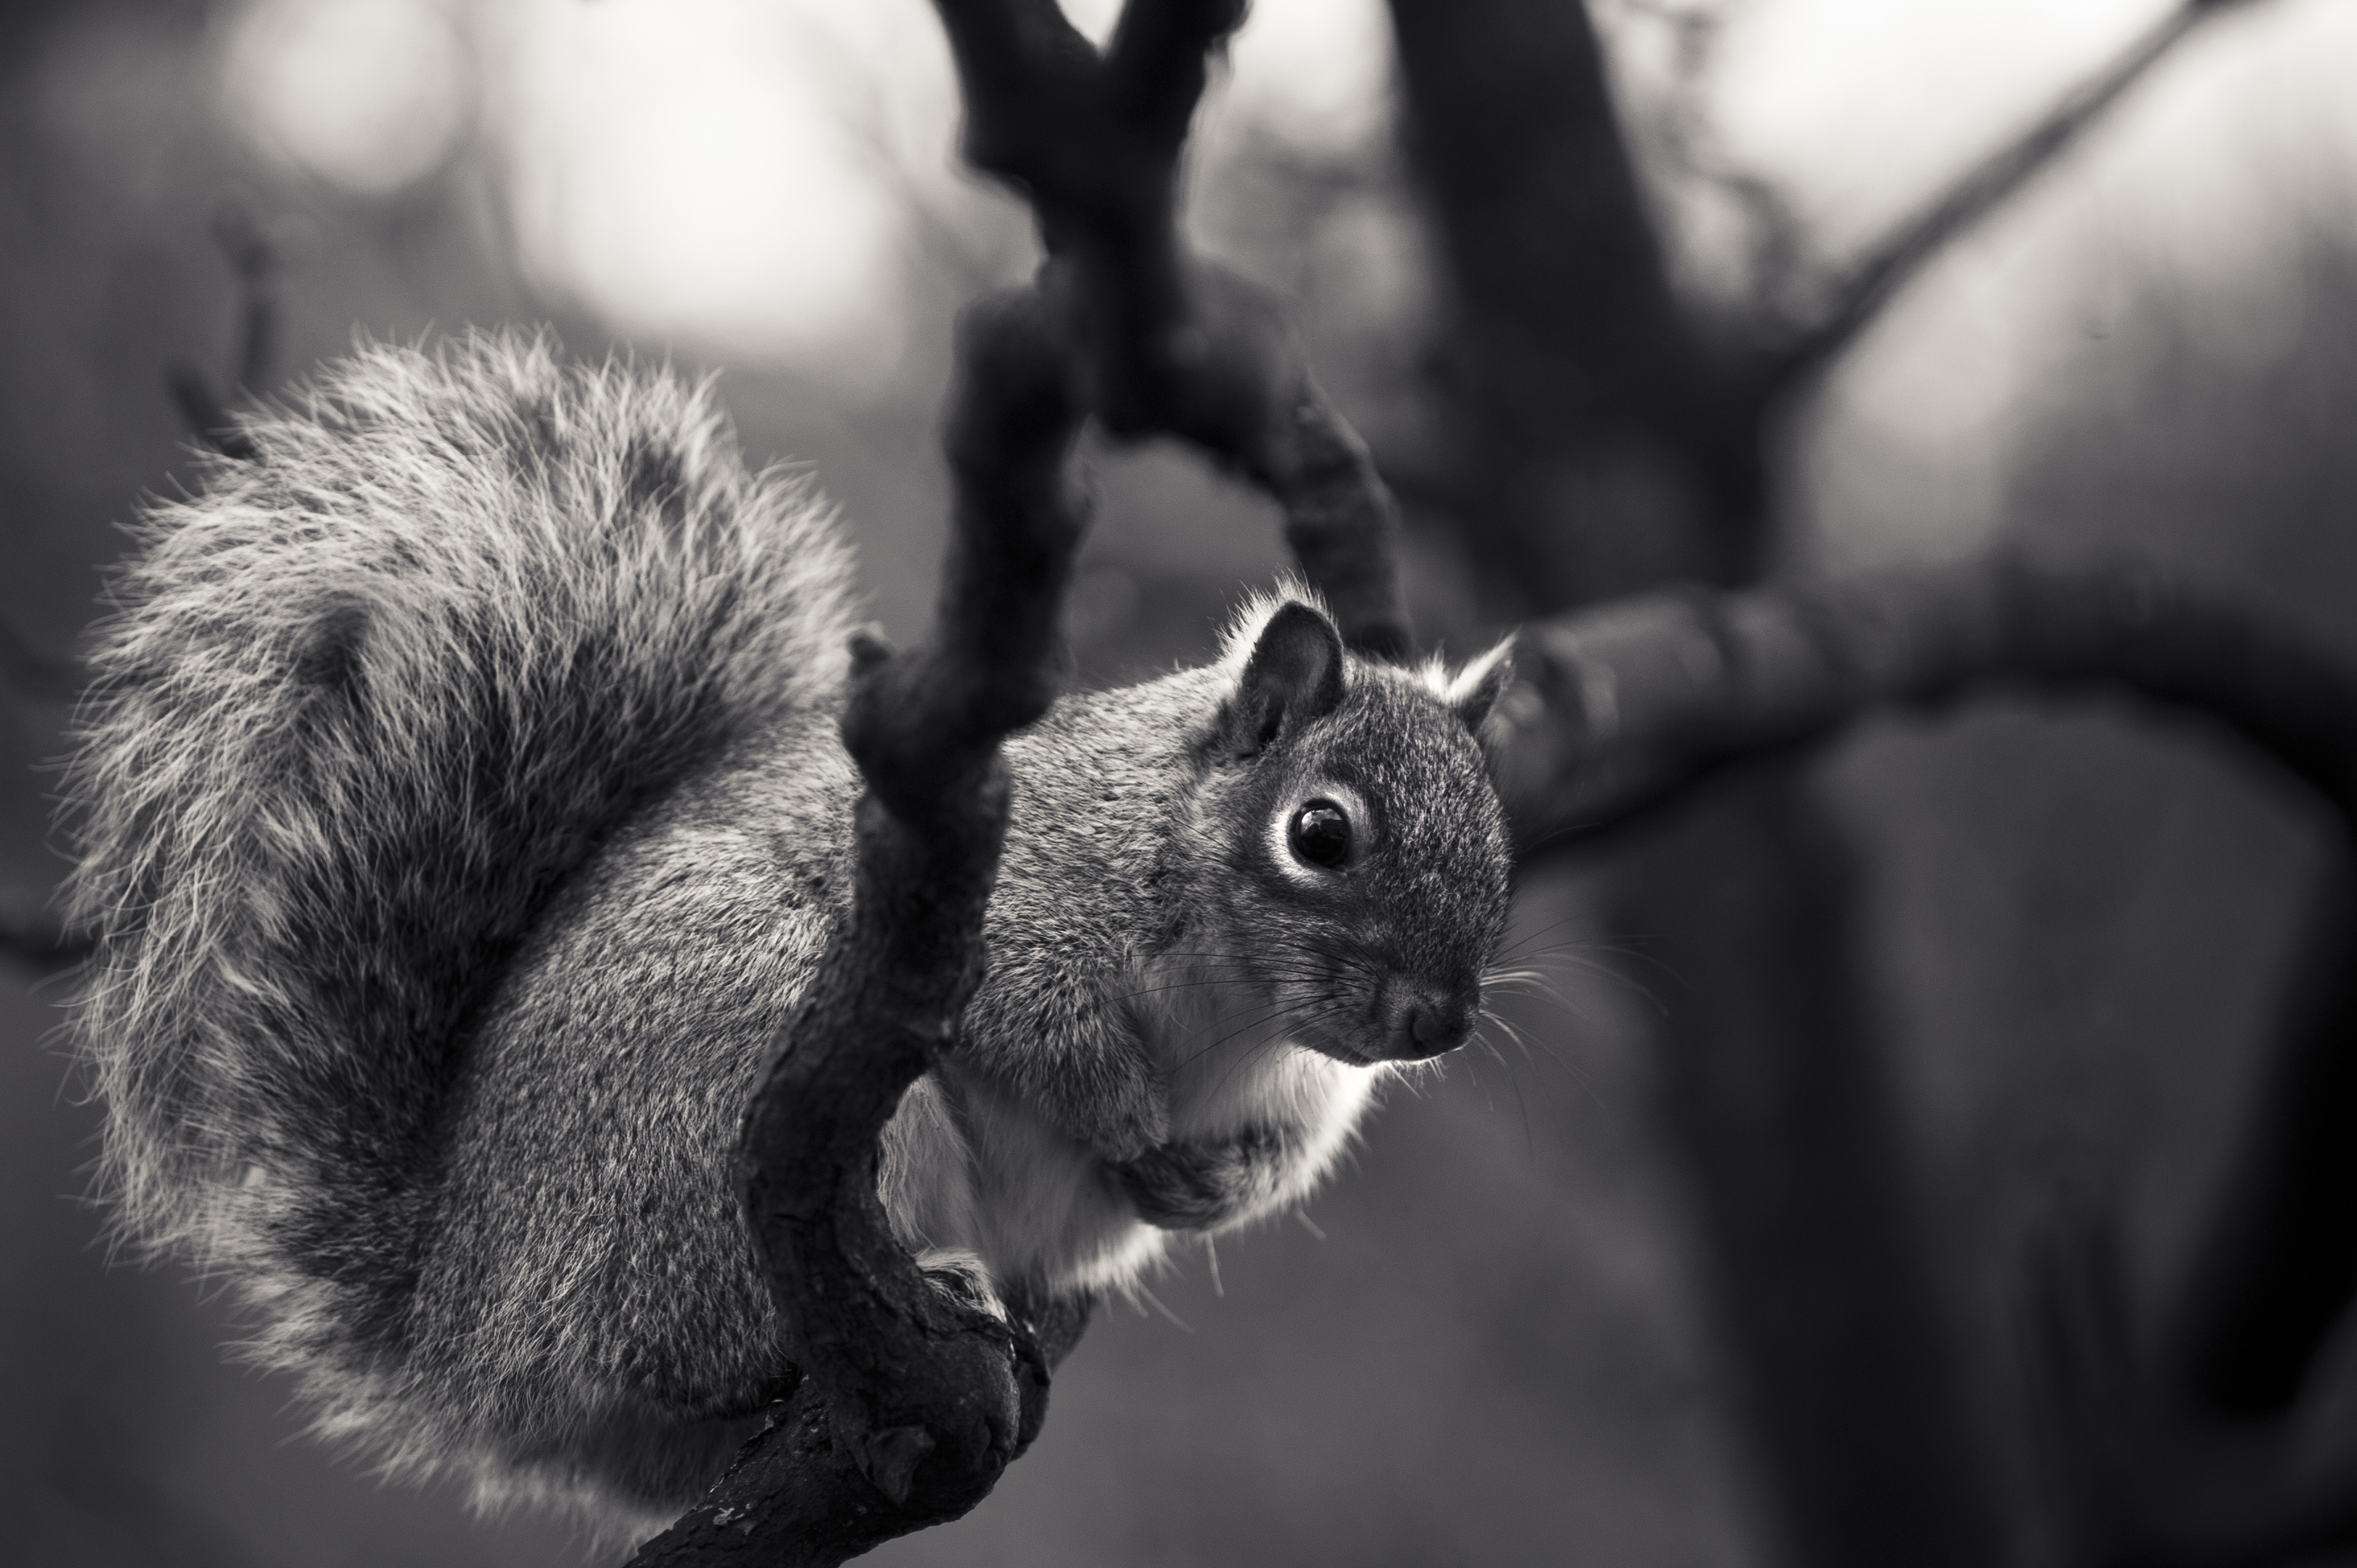 Black And White Animals Wallpapers High Quality